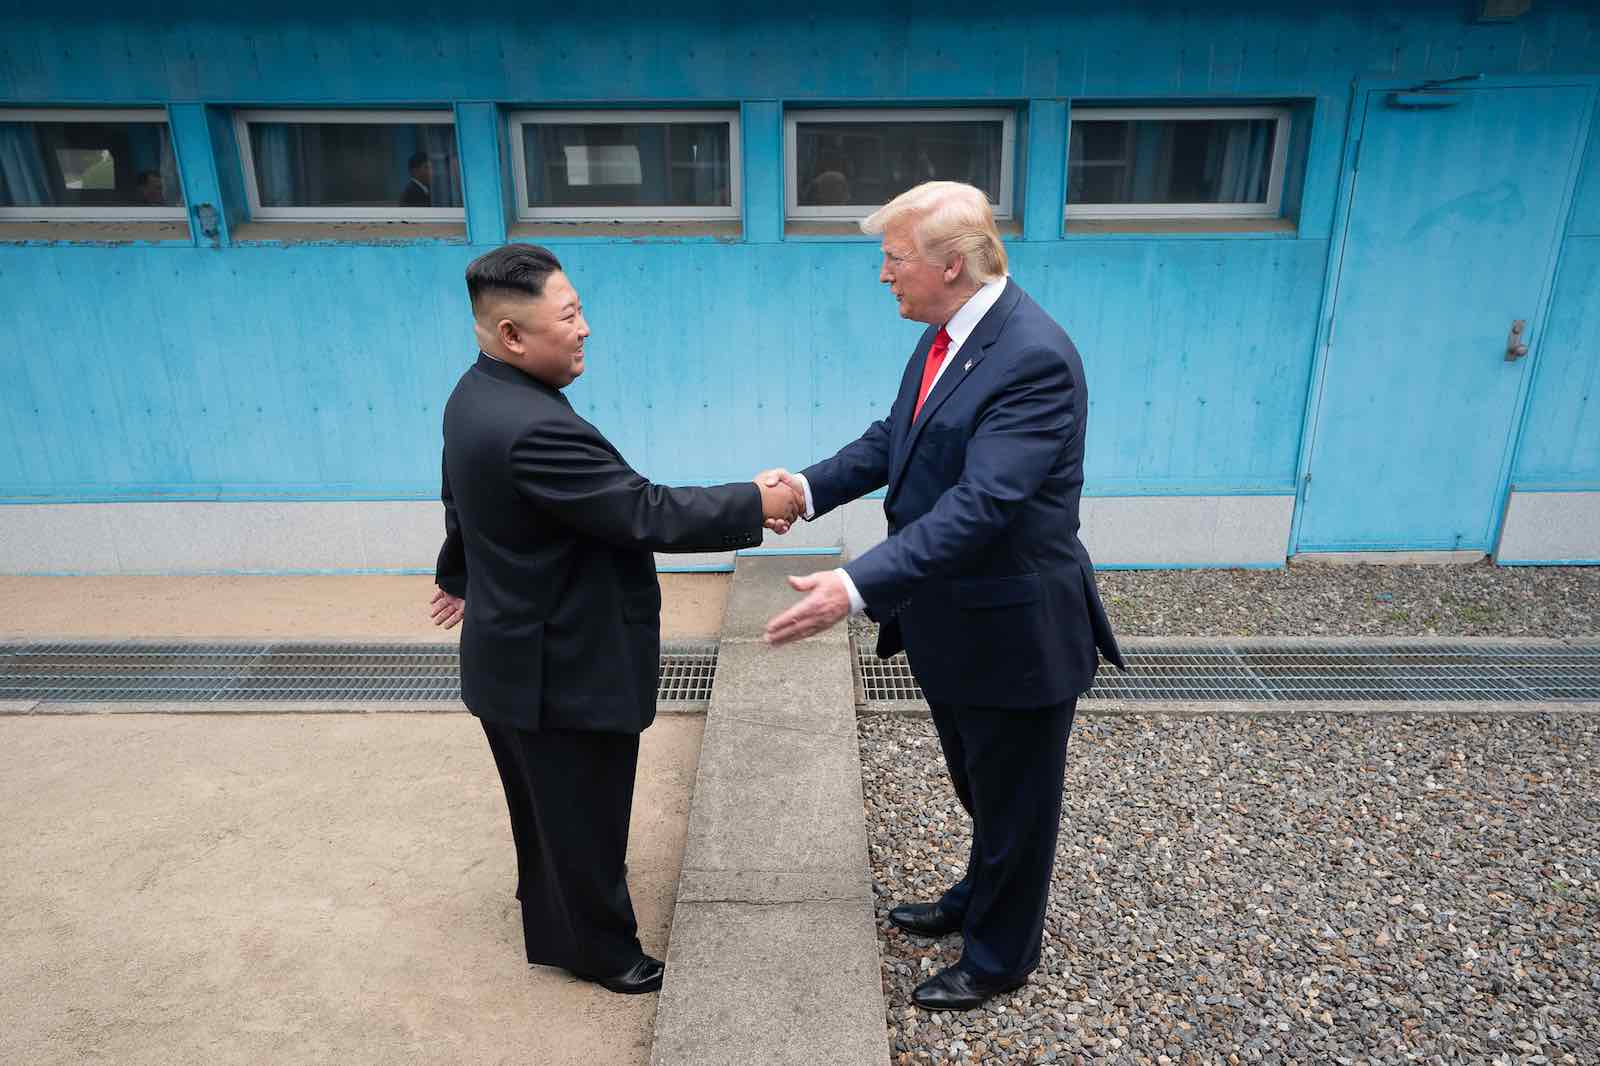 North Korean leader Kim Jong-un shakes hands with US President Donald Trump at the Demilitarized Zone between North and South Korea, 30 June 2019 (Photo: Shealah Craighead/The White House/Flickr)